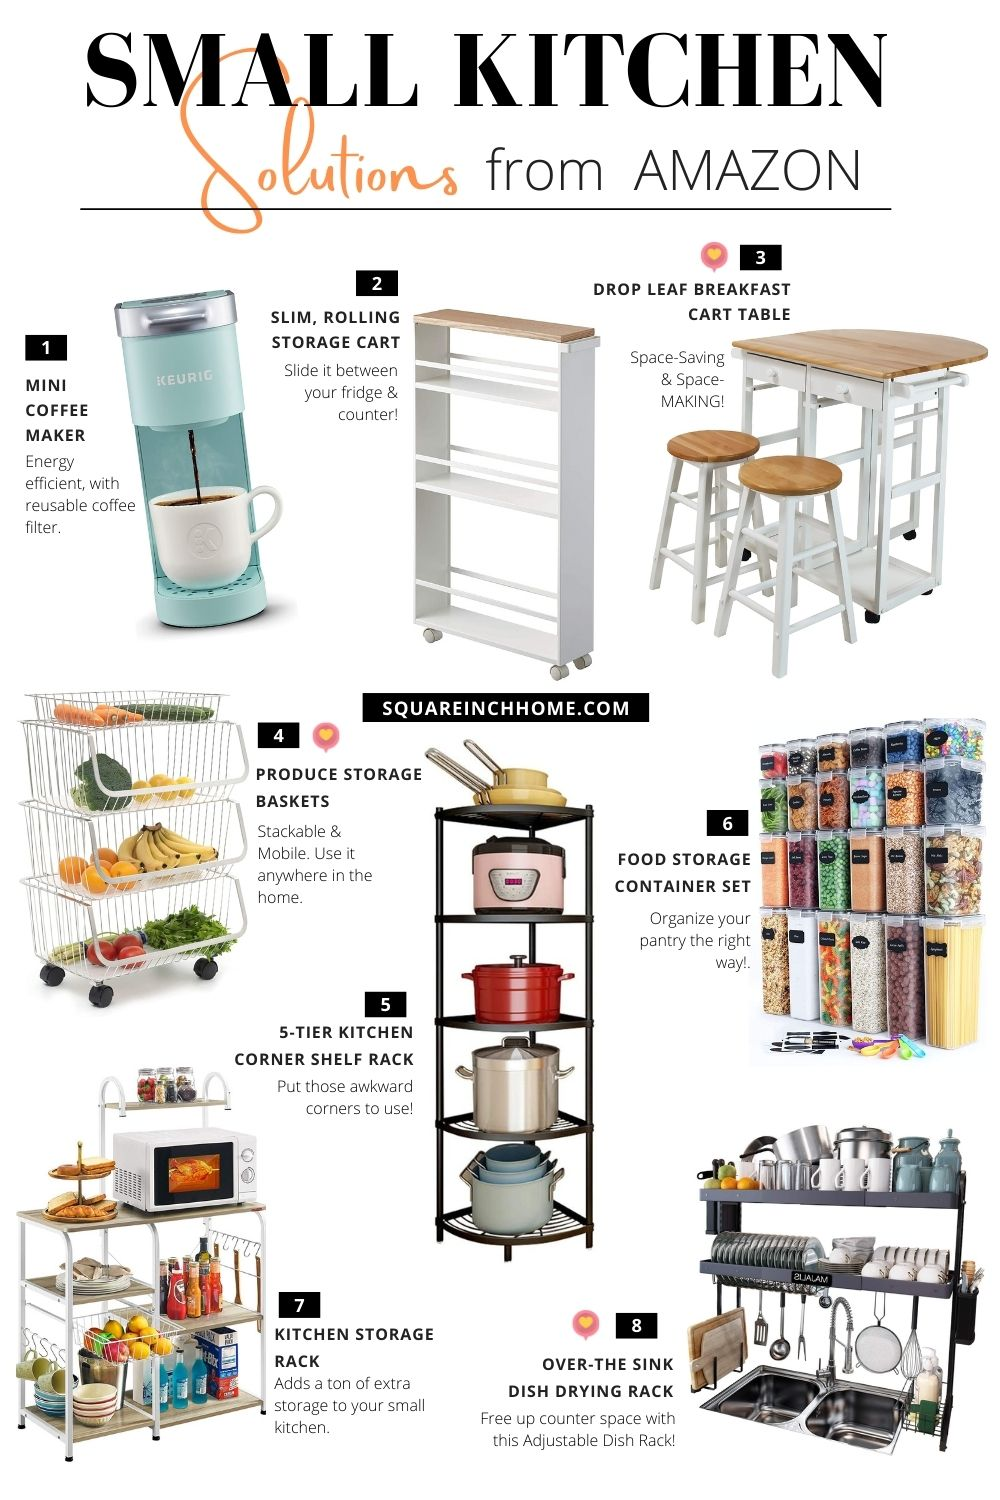 space-saving kitchen products from amazon